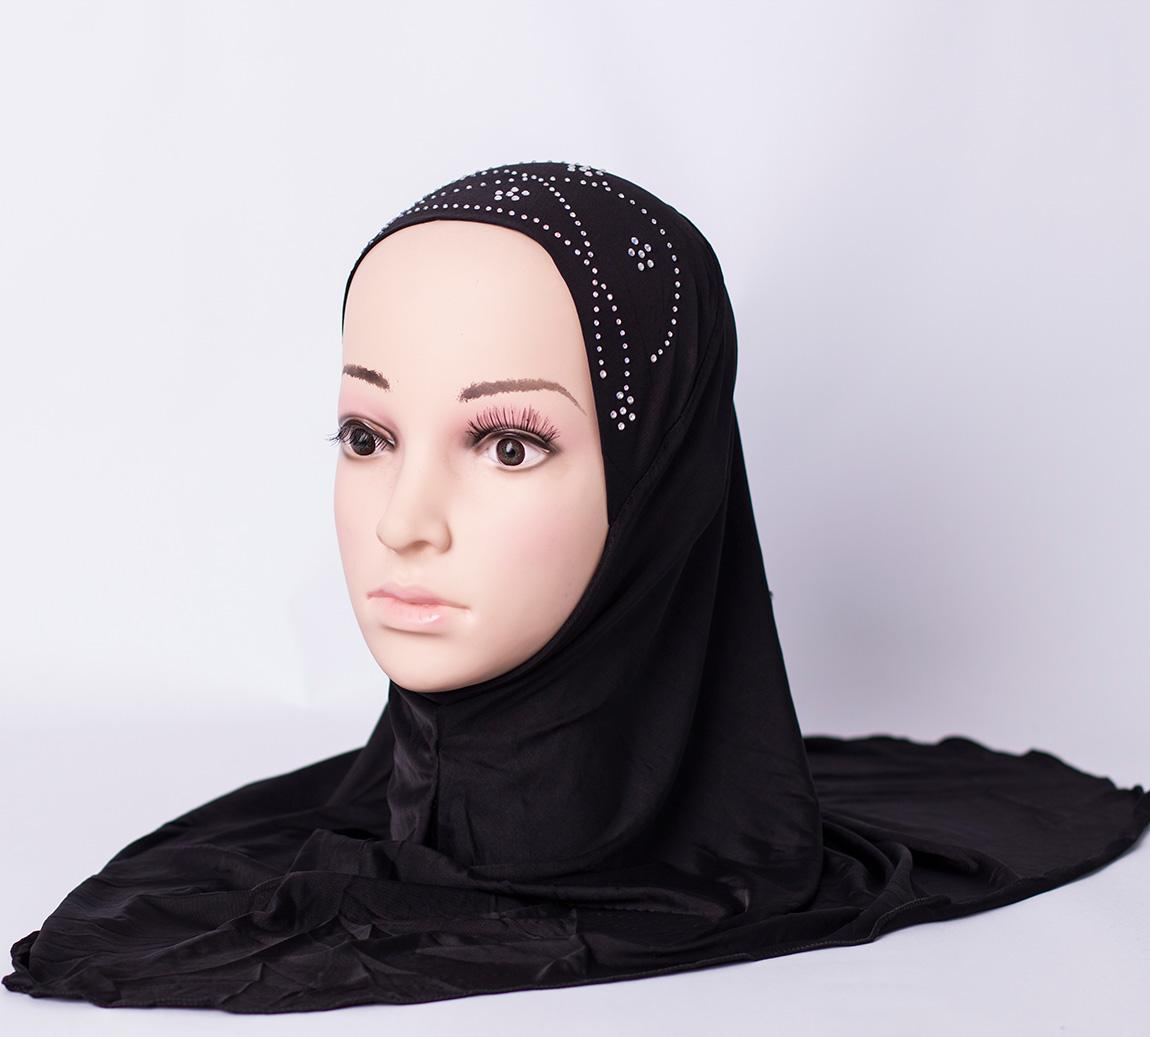 One piece hijab with rhinestones - Black